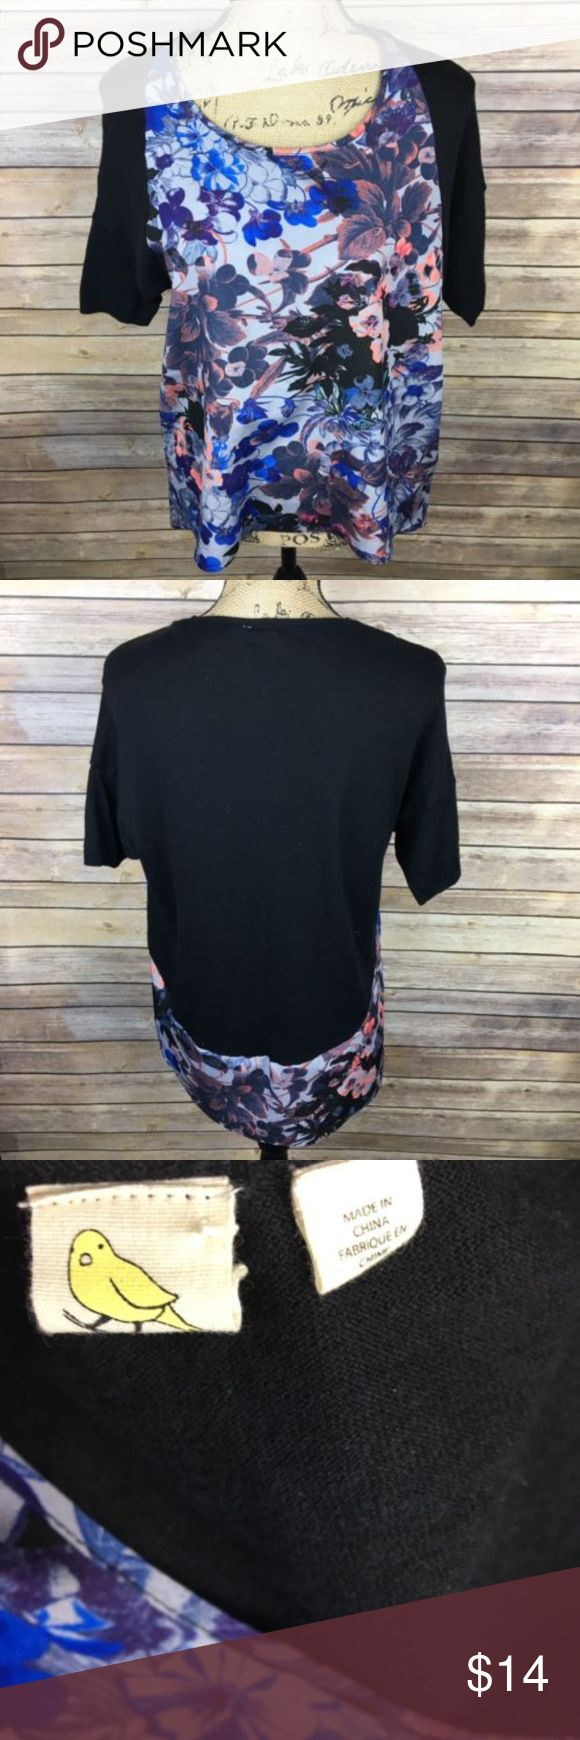 288 Best My Posh Closet Images On Pinterest Bpoi The Colours Of Indonesia Tees Black Yellow Bird Sz Medium Blue Floral Top Pre Owned Womens Knit Size Pink Short Sleeve Bust Is 19 Inches Laying